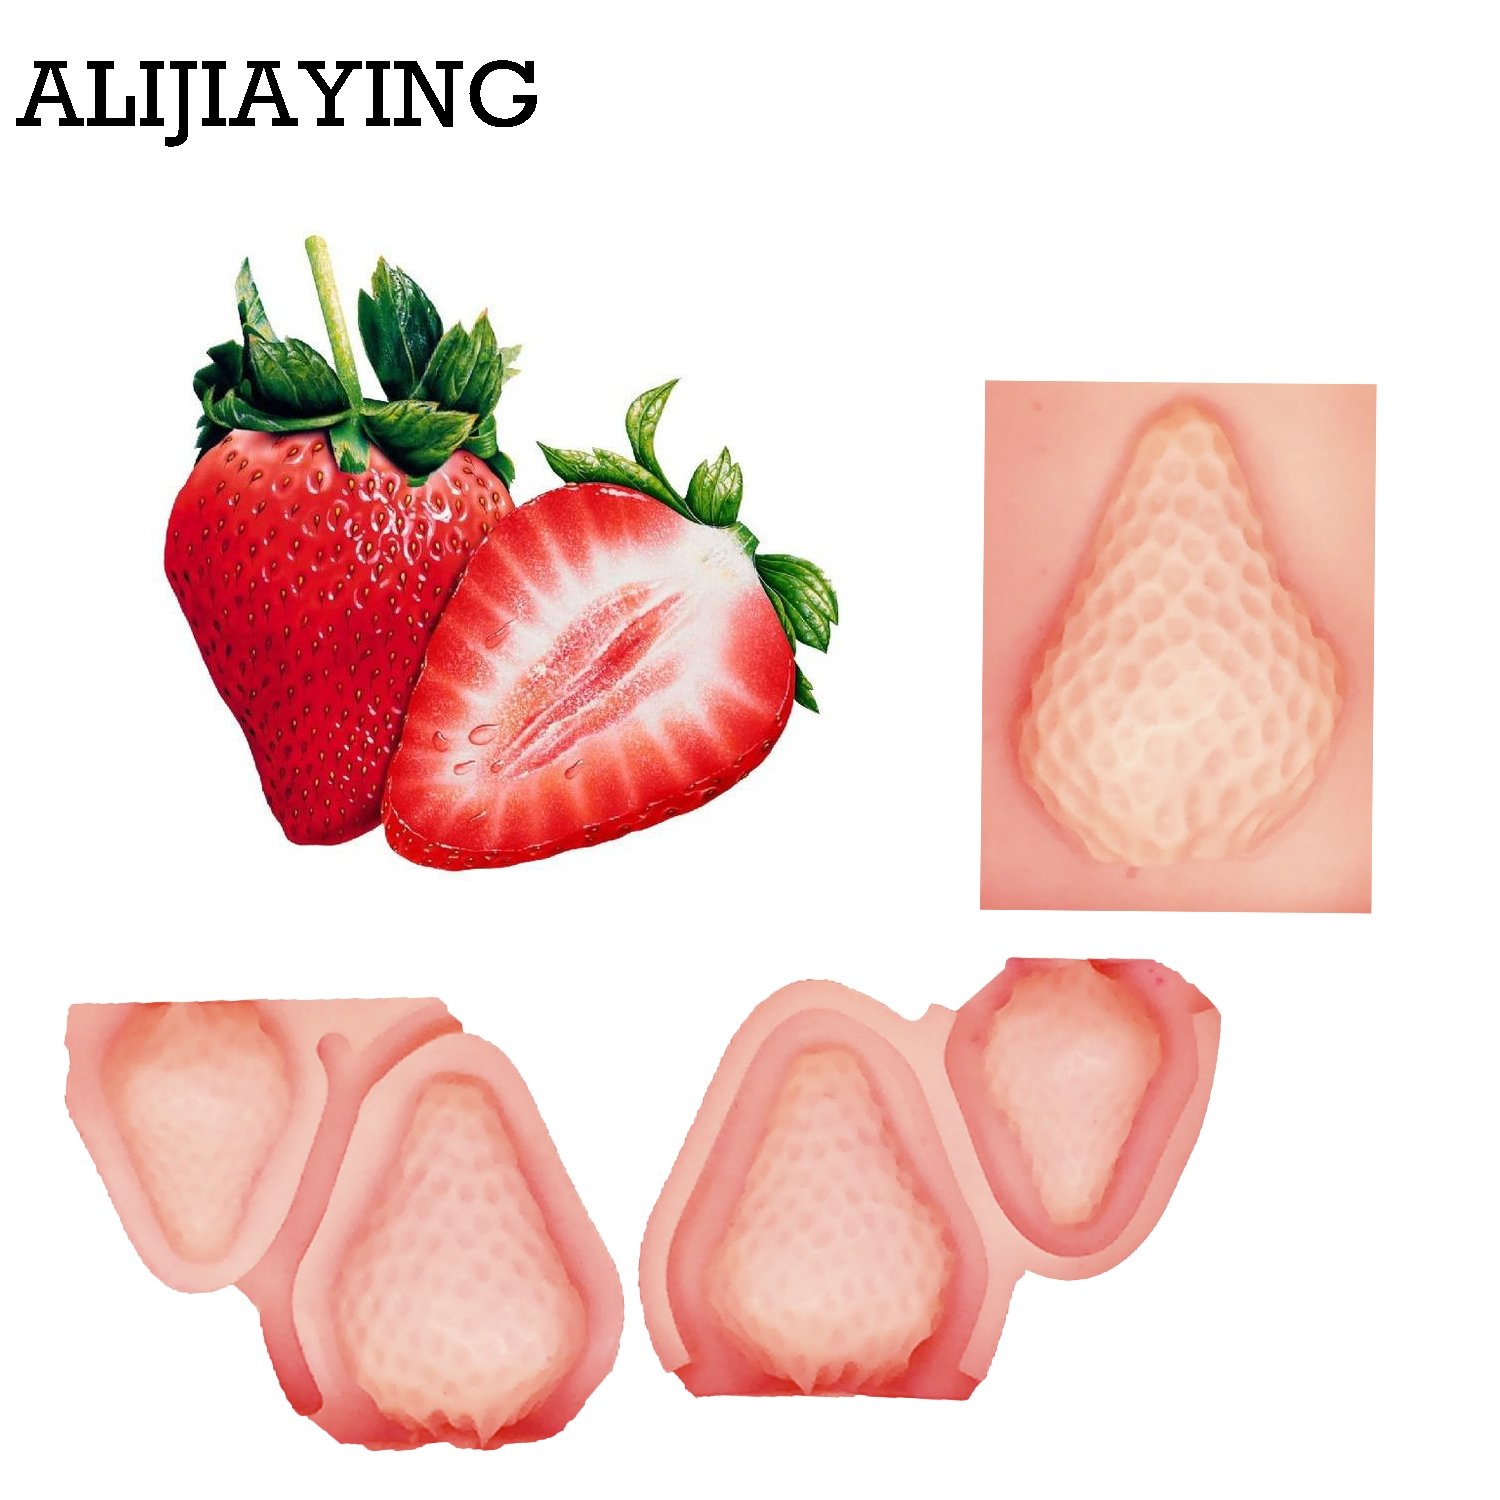 VHLL CAKE MOLDS 3PCS/set Strawberry Fruit Chocolate Making Silicone Molds Cupcake Fondant Cake Decorating Tools Sugar Candy Clay Moulds